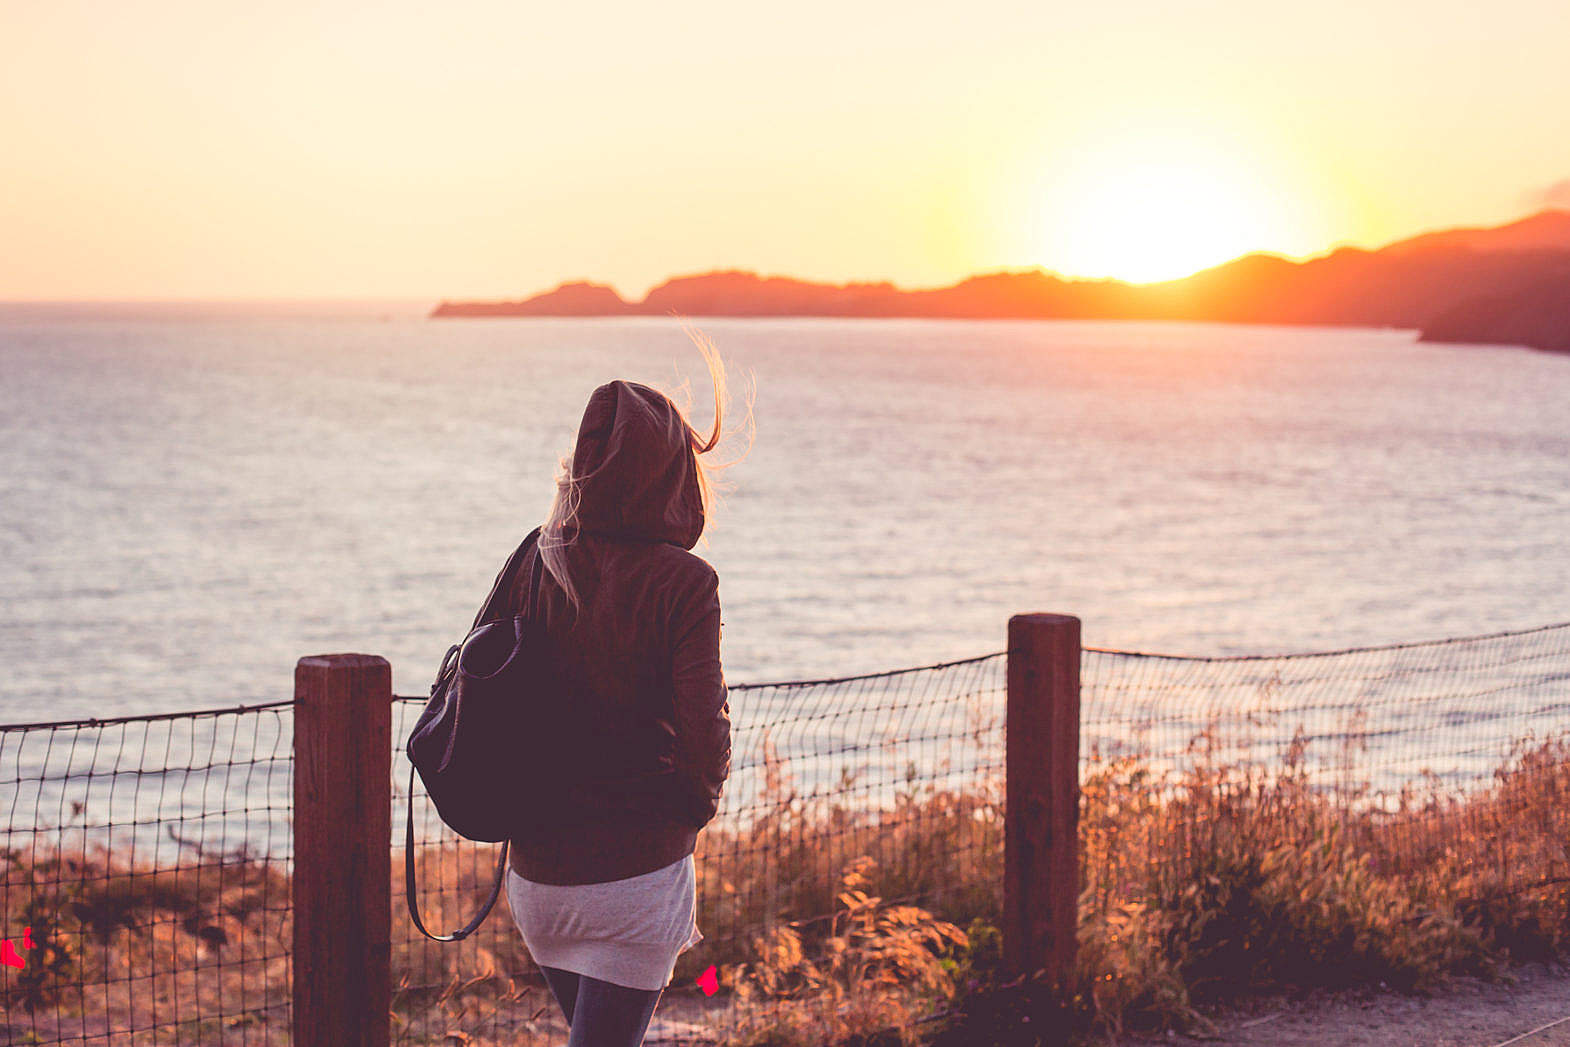 young-girl-on-a-walk-near-the-shore-at-sunset_free_stock_photos_picjumbo_hnck2769-1570x1047.jpg